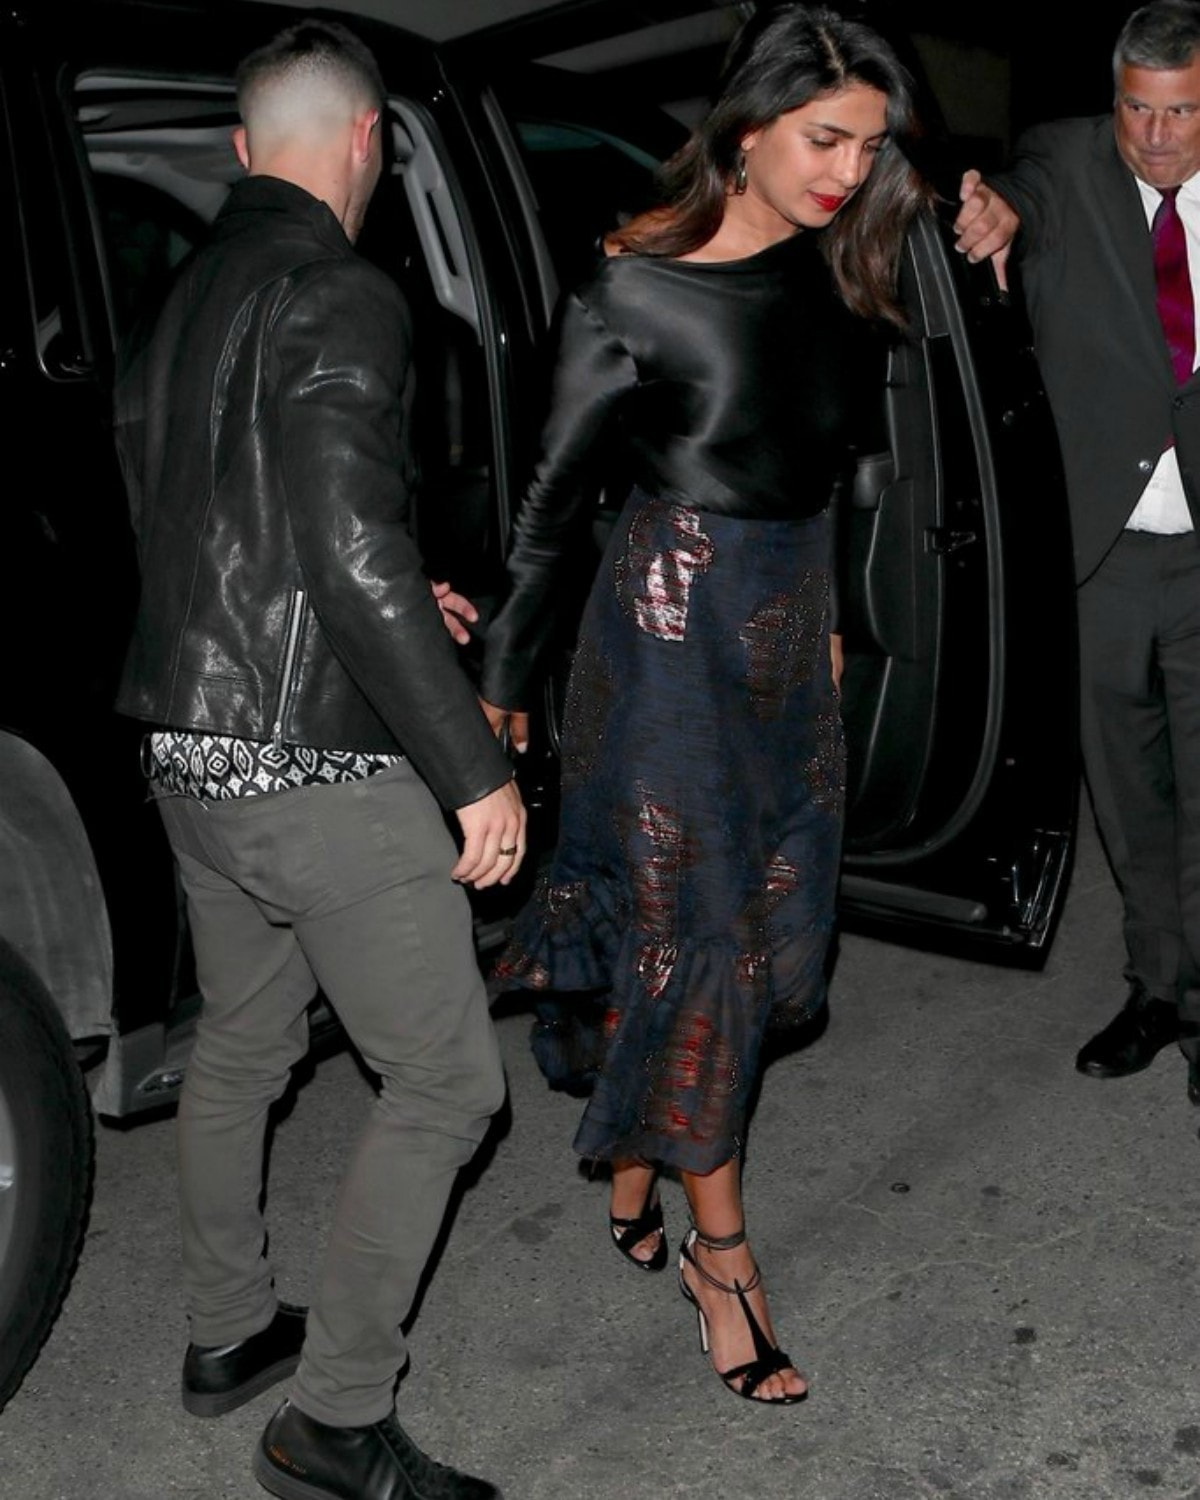 Priyanka and Nick Jonas were snapped by paparazzi on their way to their dinner date